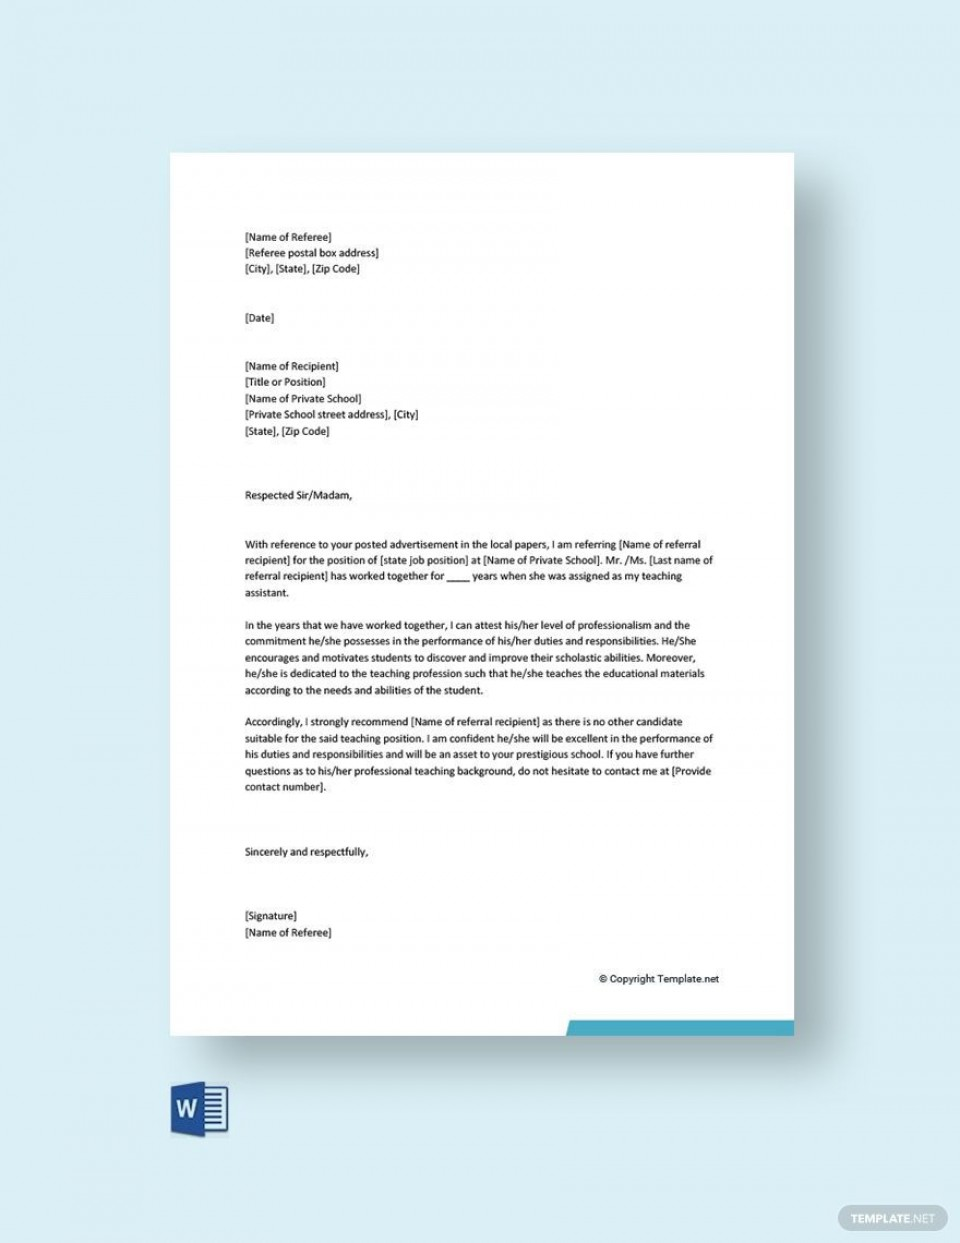 003 Fascinating Free Reference Letter Template Word Idea  Personal For Employment960